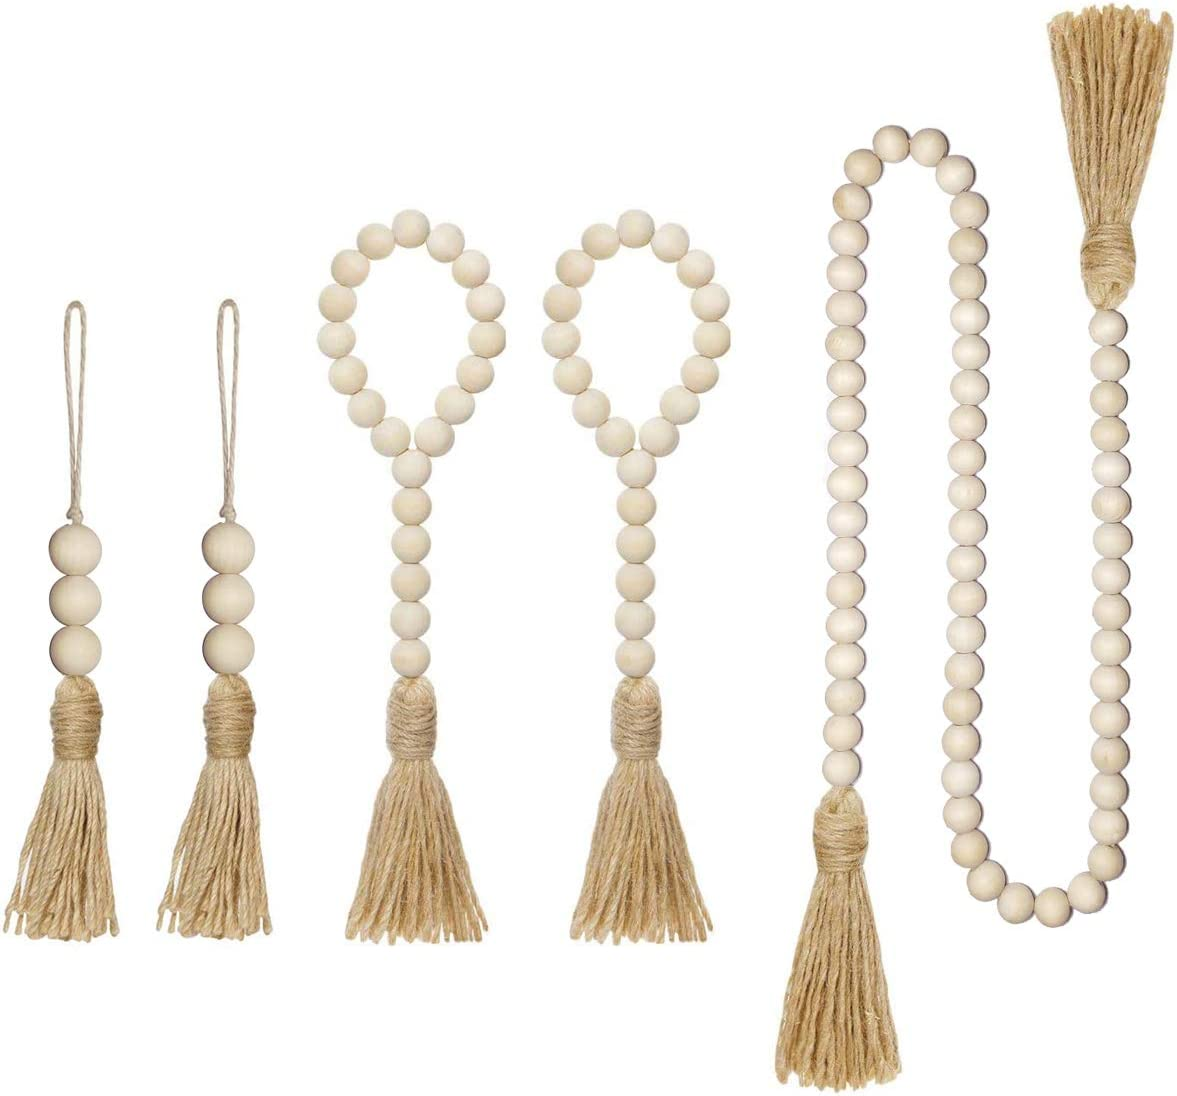 5 Packs Wood Bead Garland with Tassels Farmhouse Beads Rustic Country Decor Prayer Beads Wall Hanging Decor 3 Size Suit